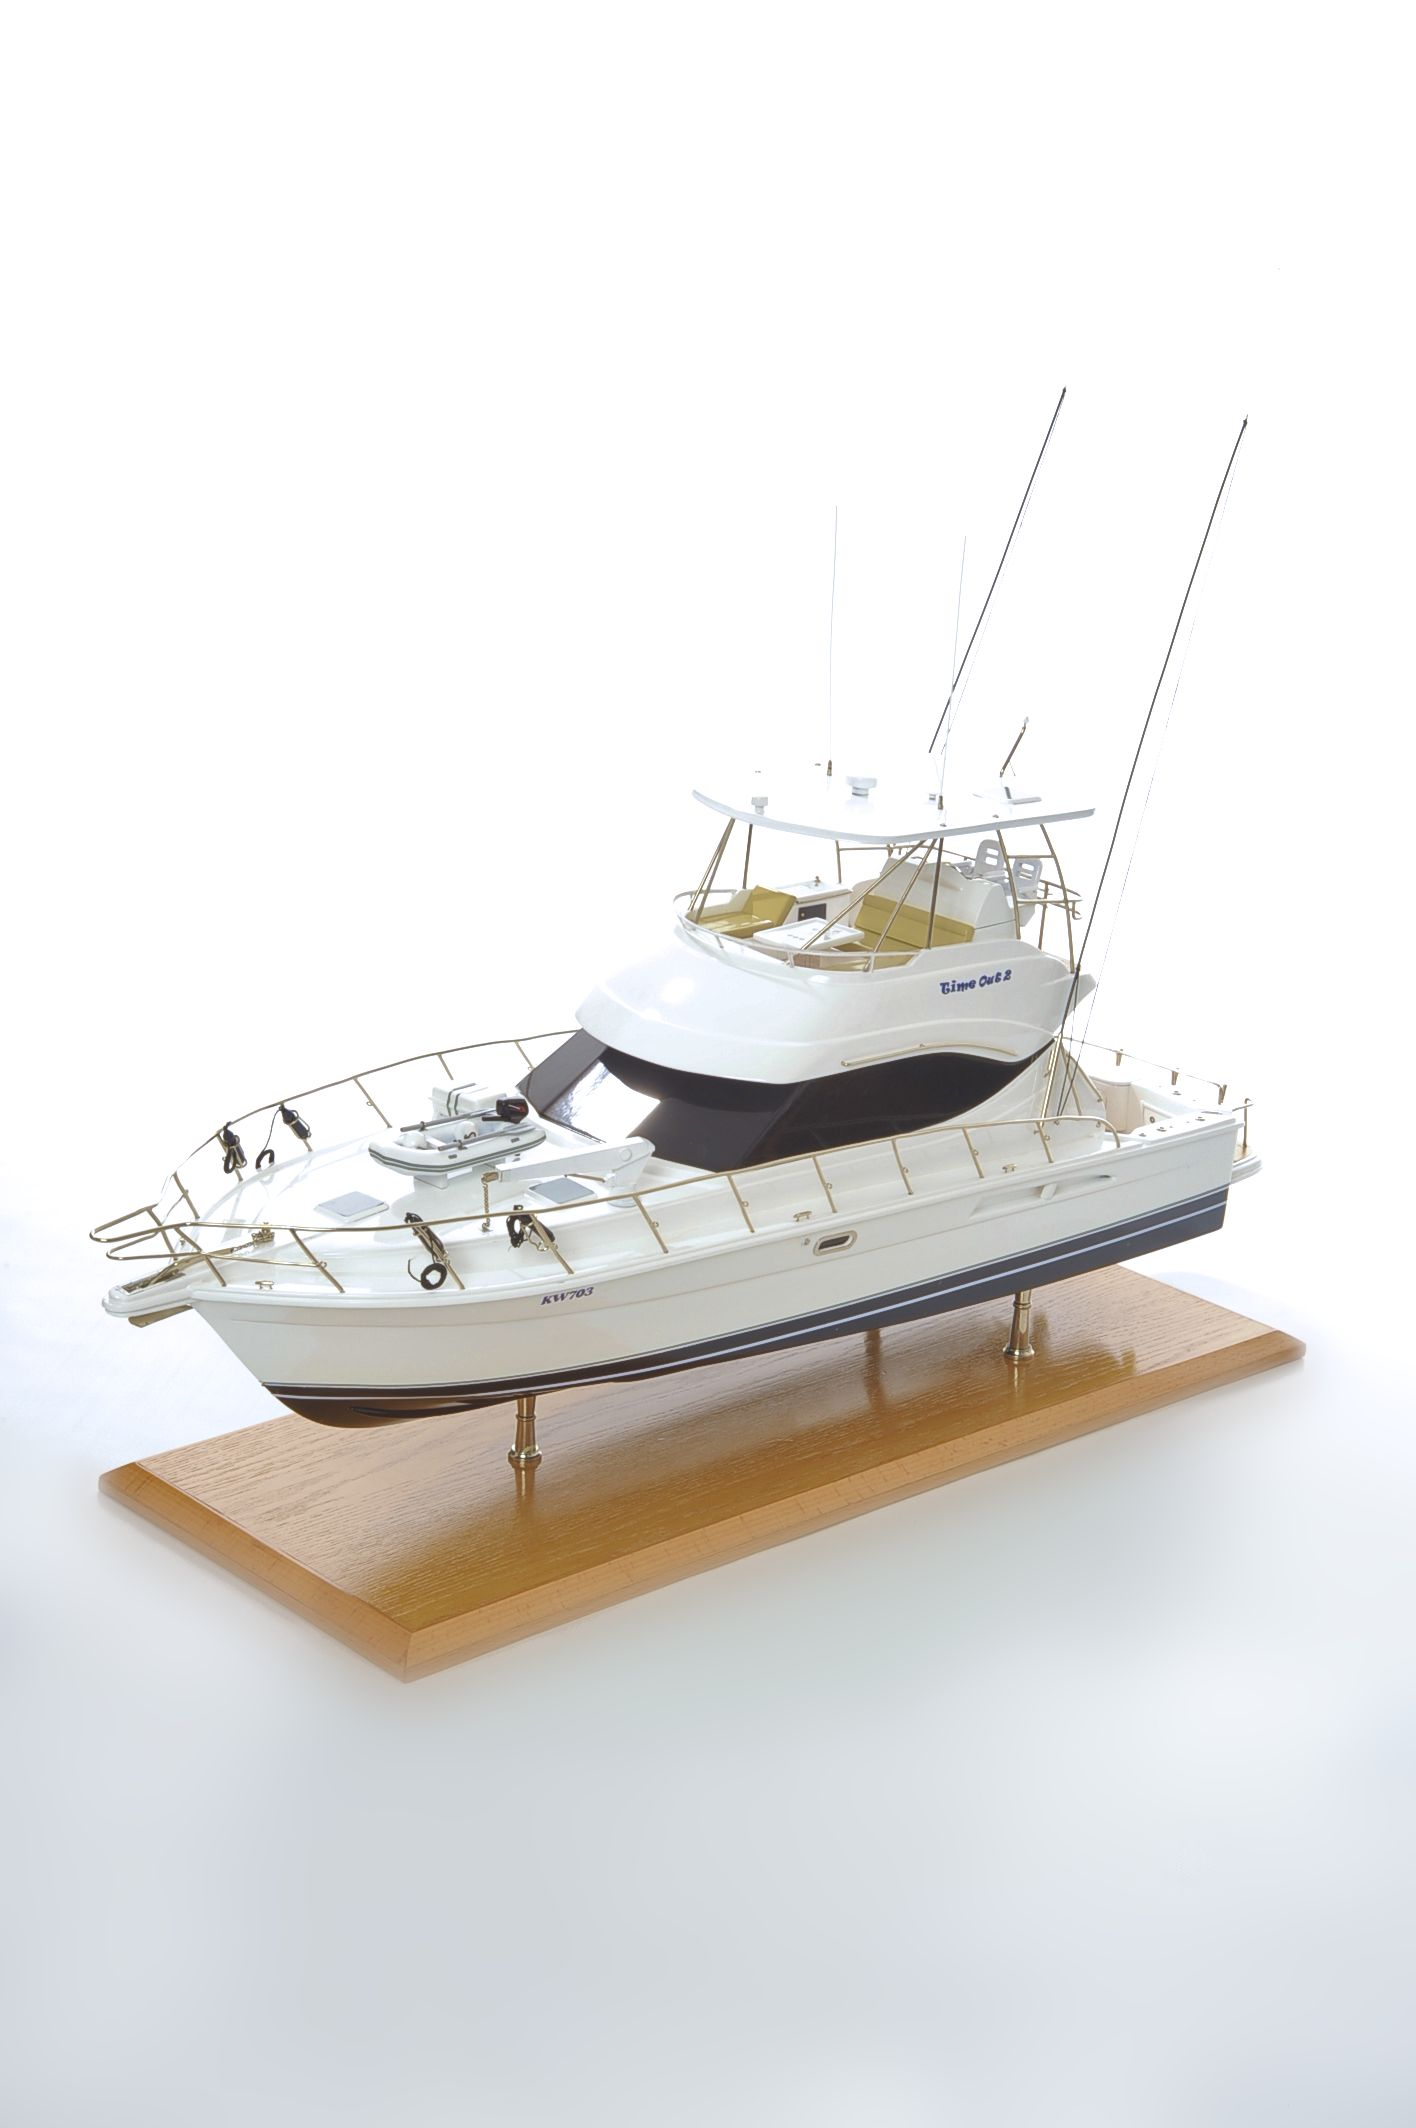 1517-8951-Rivera-45-Model-Boat-Time-Out-2